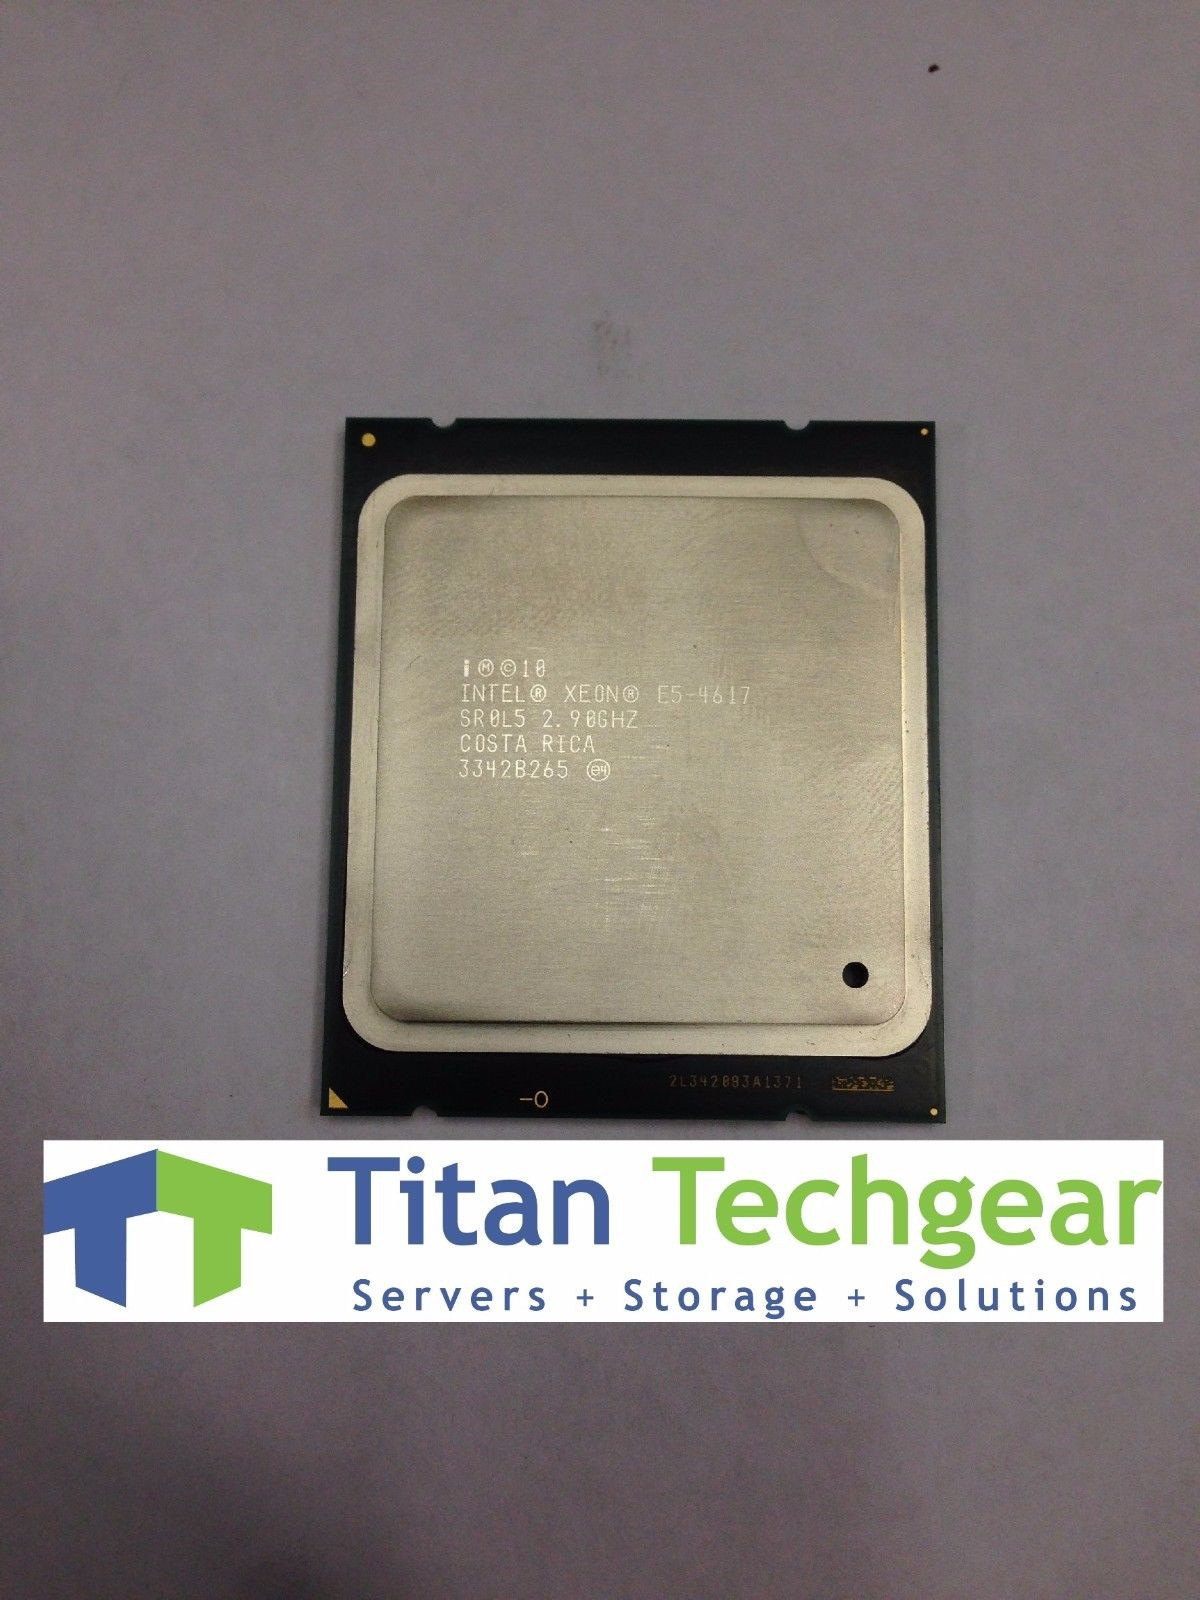 Intel SR0L5 Xeon E5-4617 2.9GHz 6 Core 15MB L3 LGA2011 SR0L5 CPU Processor